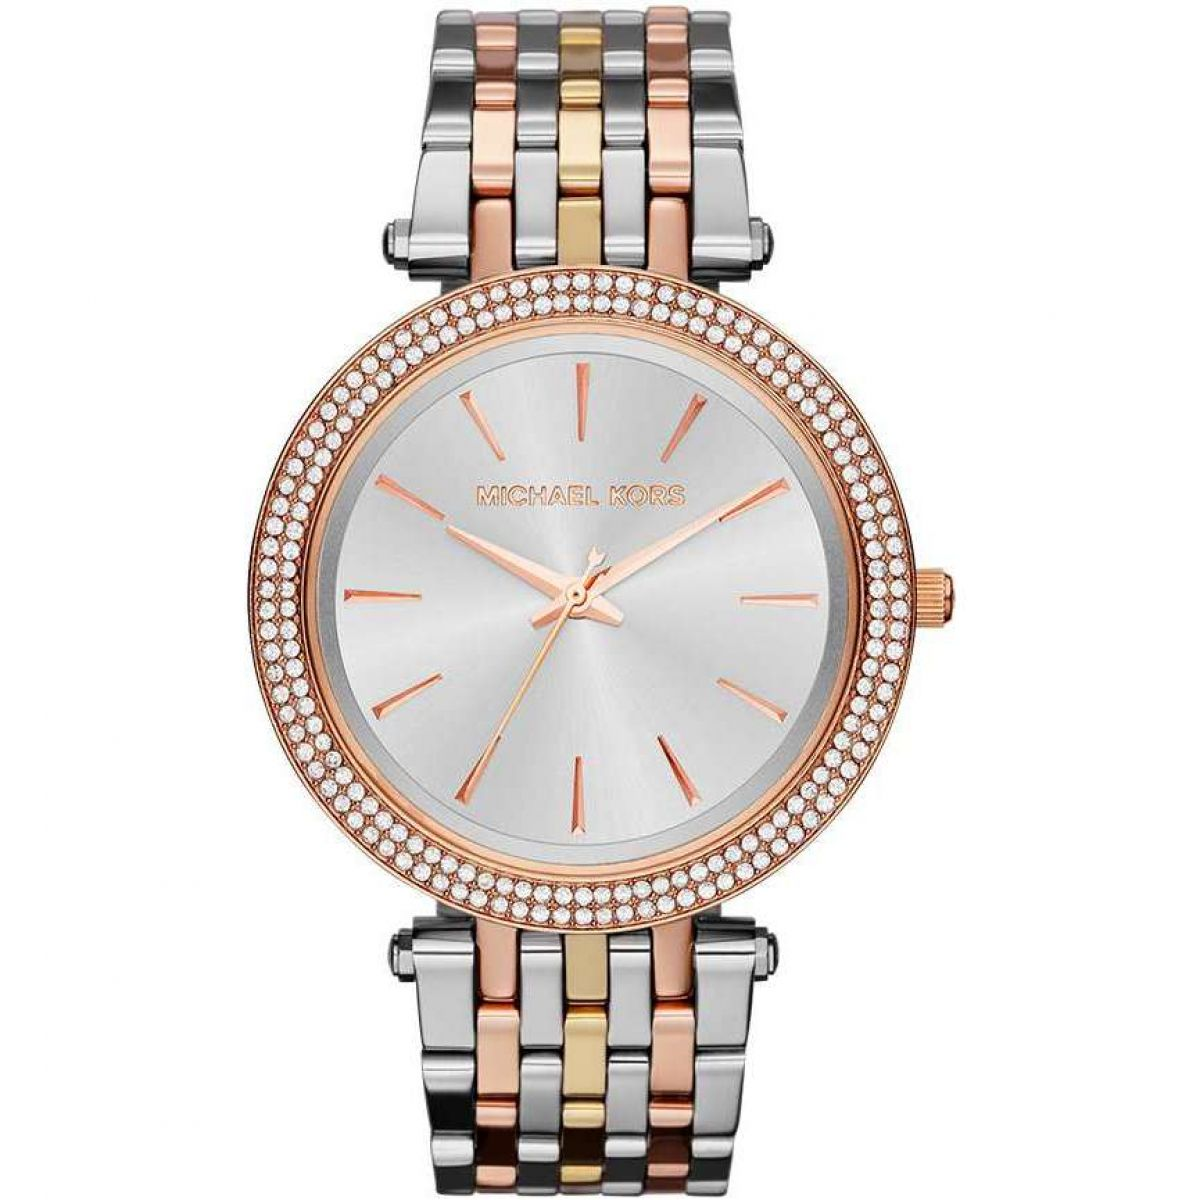 Ladies Michael Kors Darci Glitz Watch MK WatchShopcom - Graphic design invoice template word michael kors outlet online store